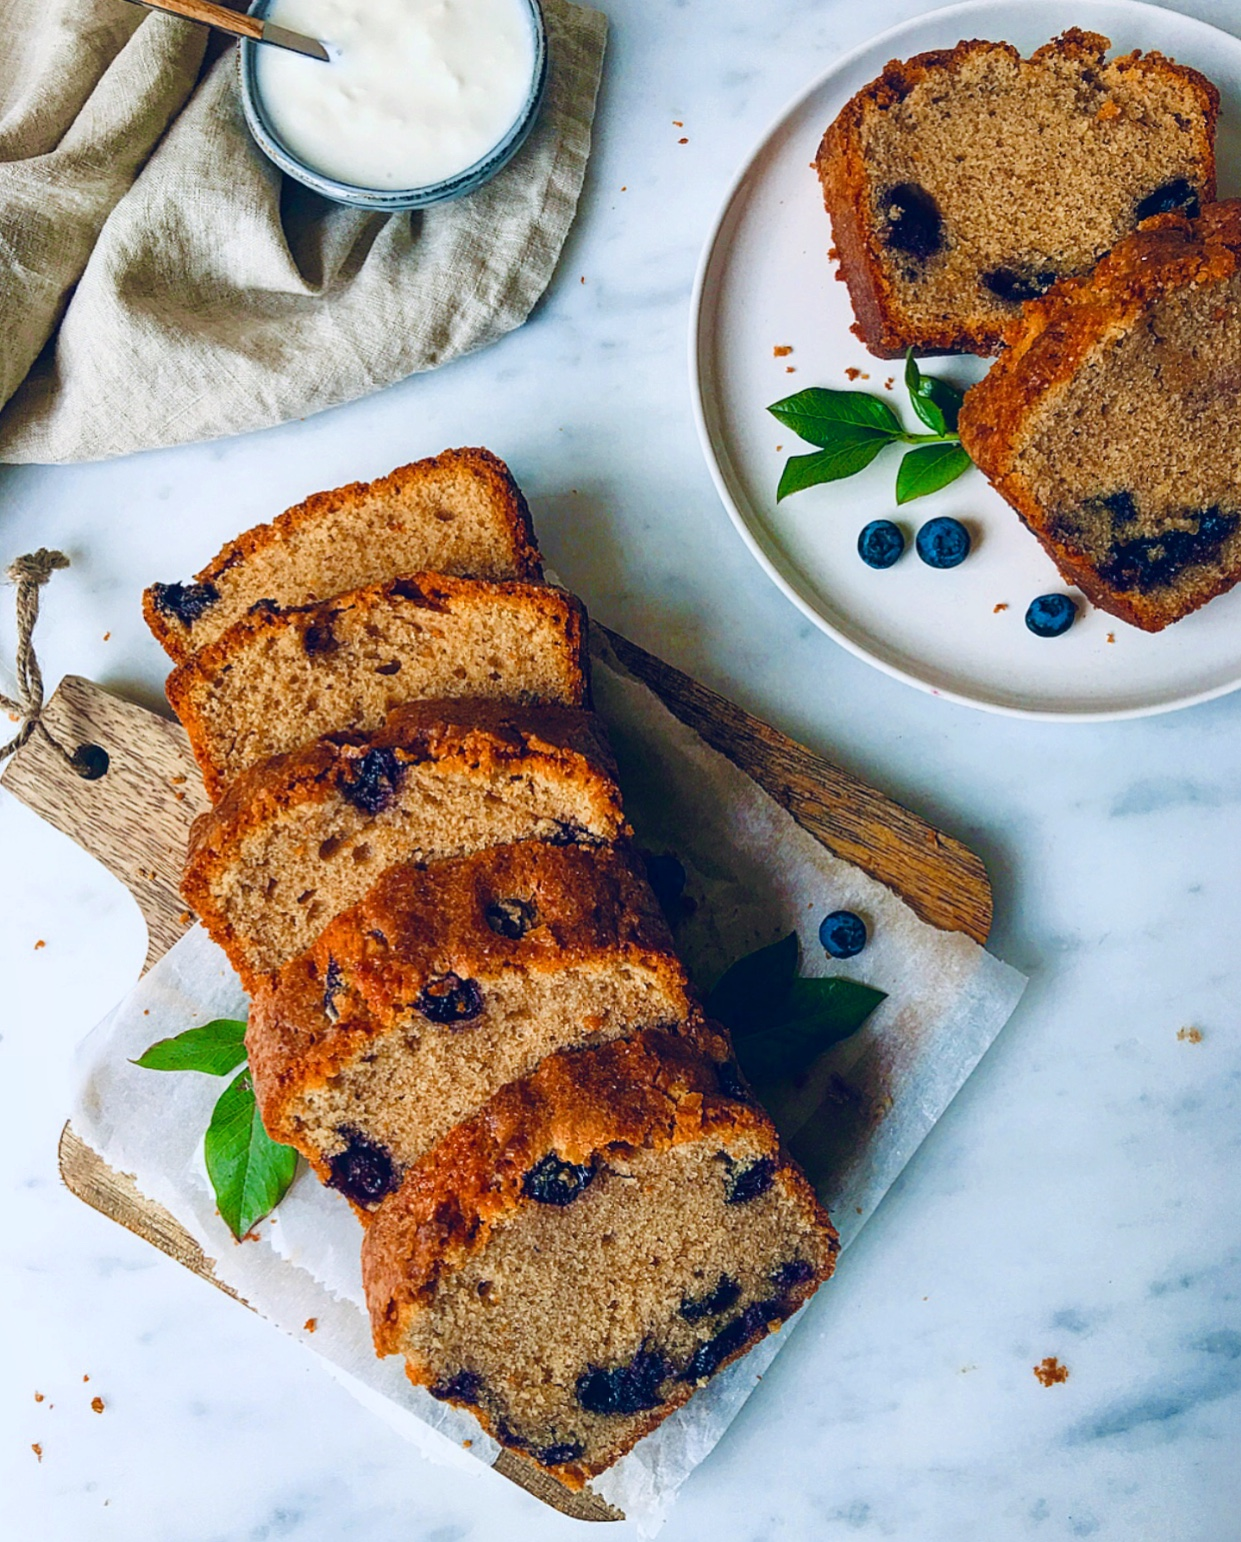 This Blueberry Cinnamon Loaf Cake makes a perfect tea treat or snack!